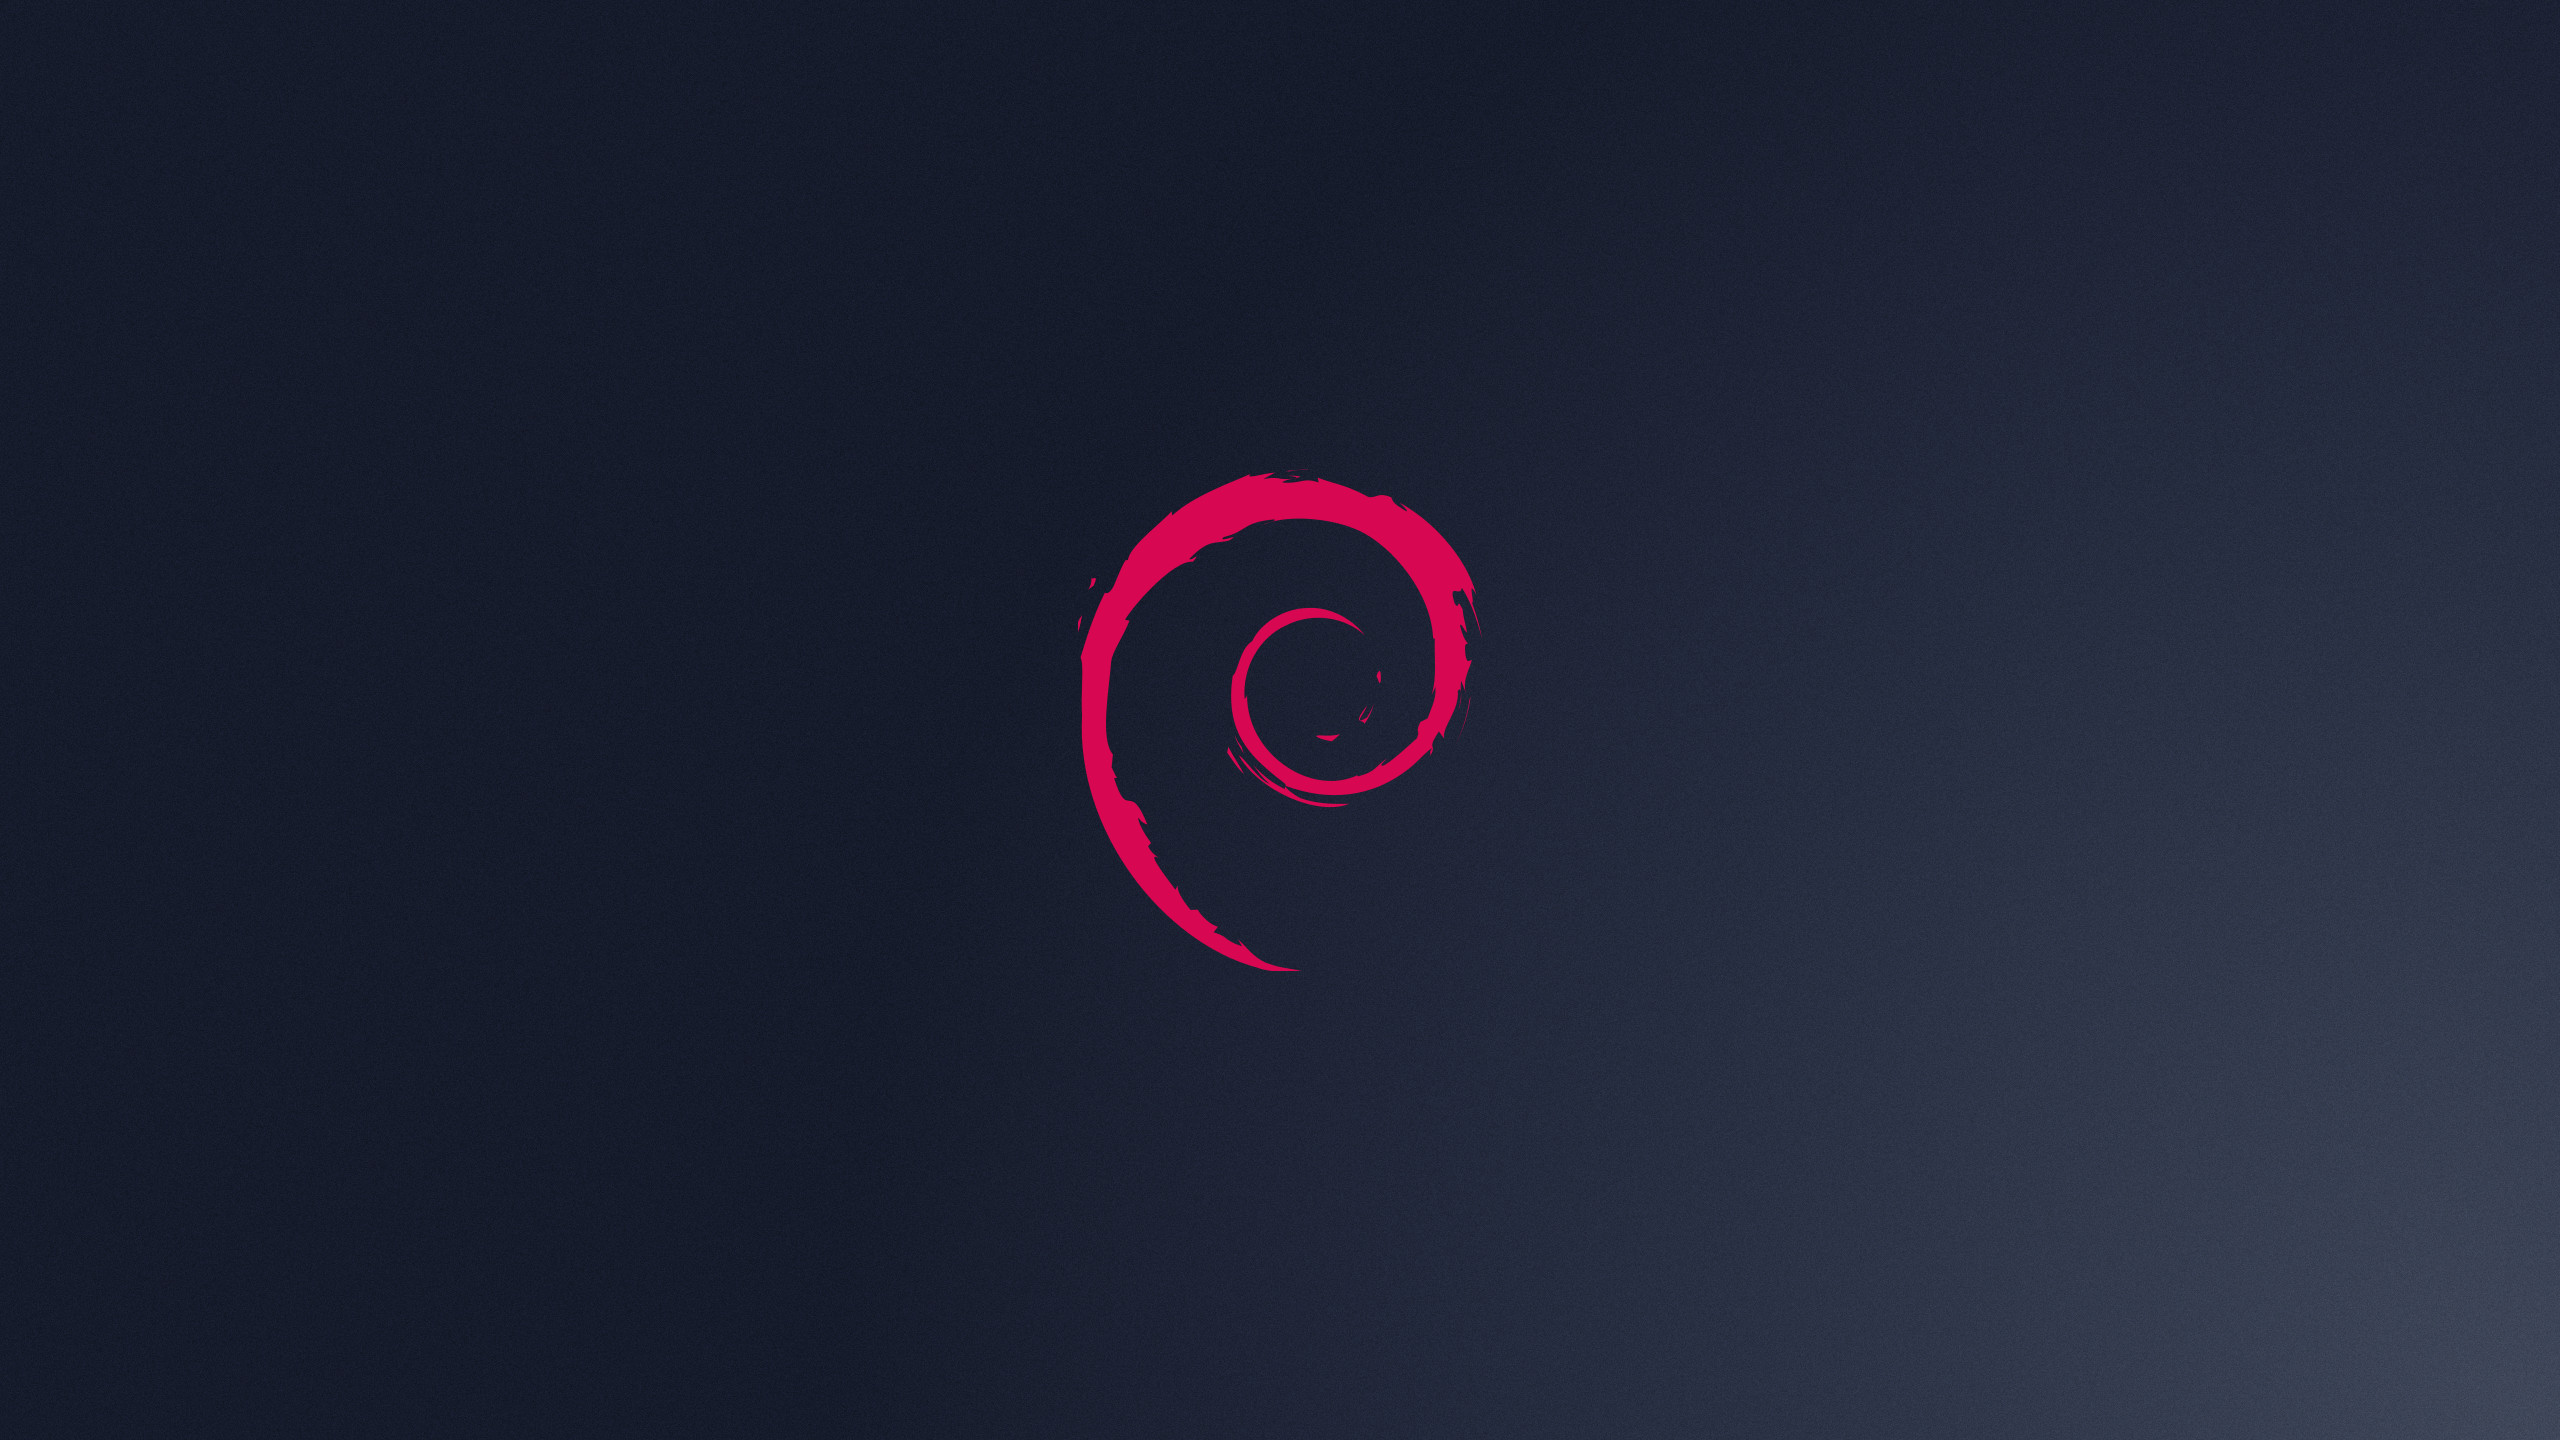 2560x1440 Related Wallpapers from Fox Racing Wallpaper. Free Debian Logo Wallpaper